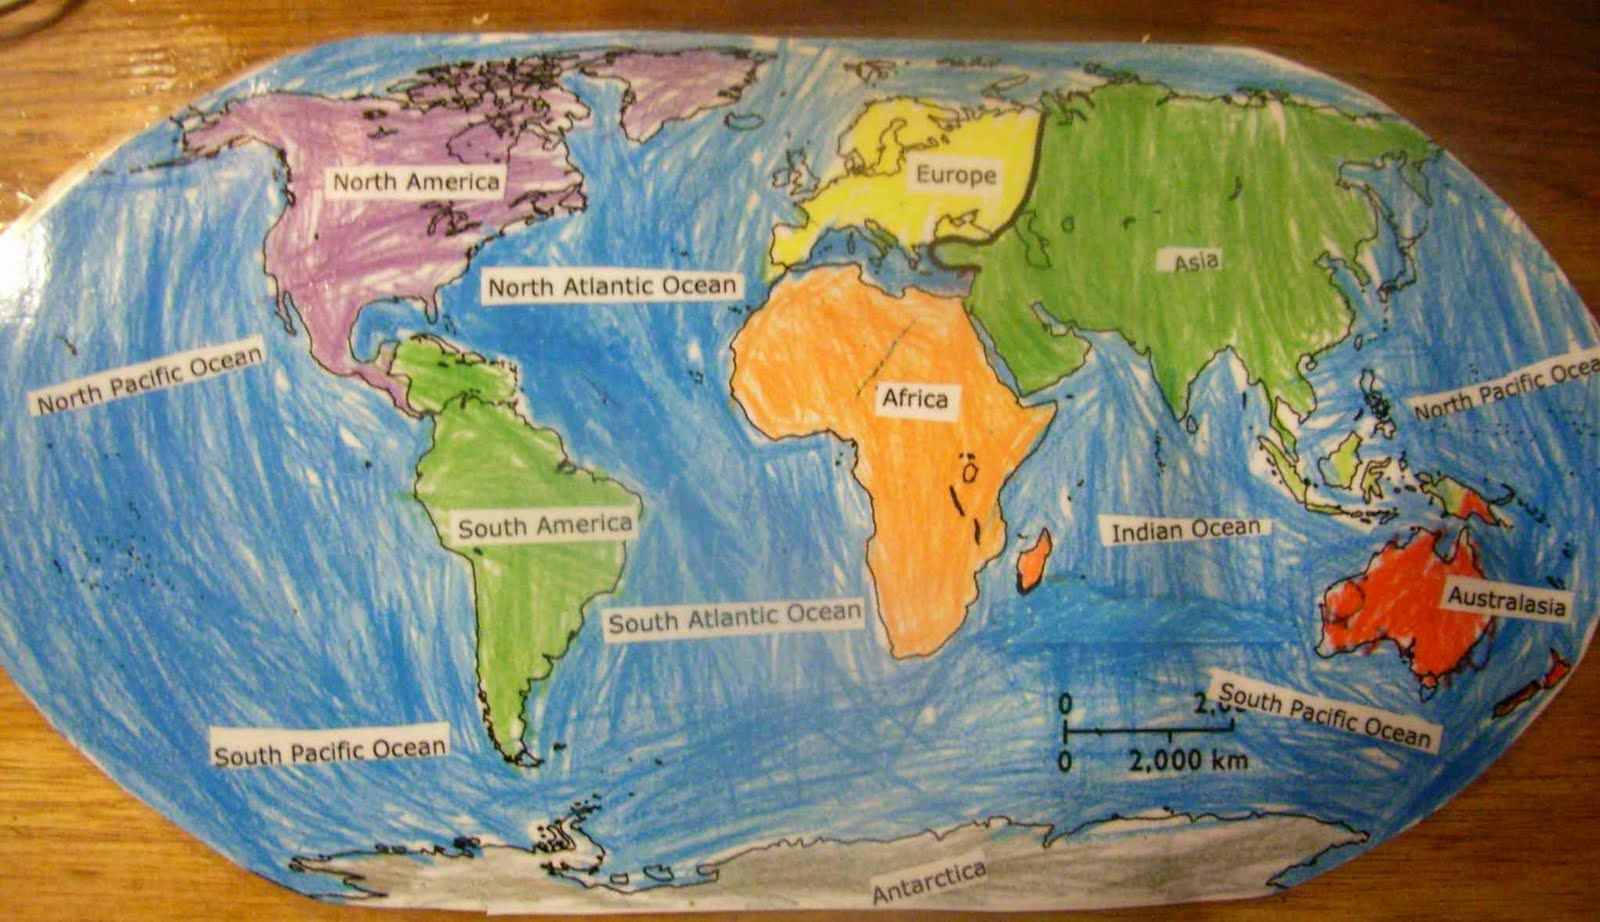 World map continents and oceans jaspers world map showing the world map continents and oceans jaspers world map showing the continents and major oceans gumiabroncs Gallery